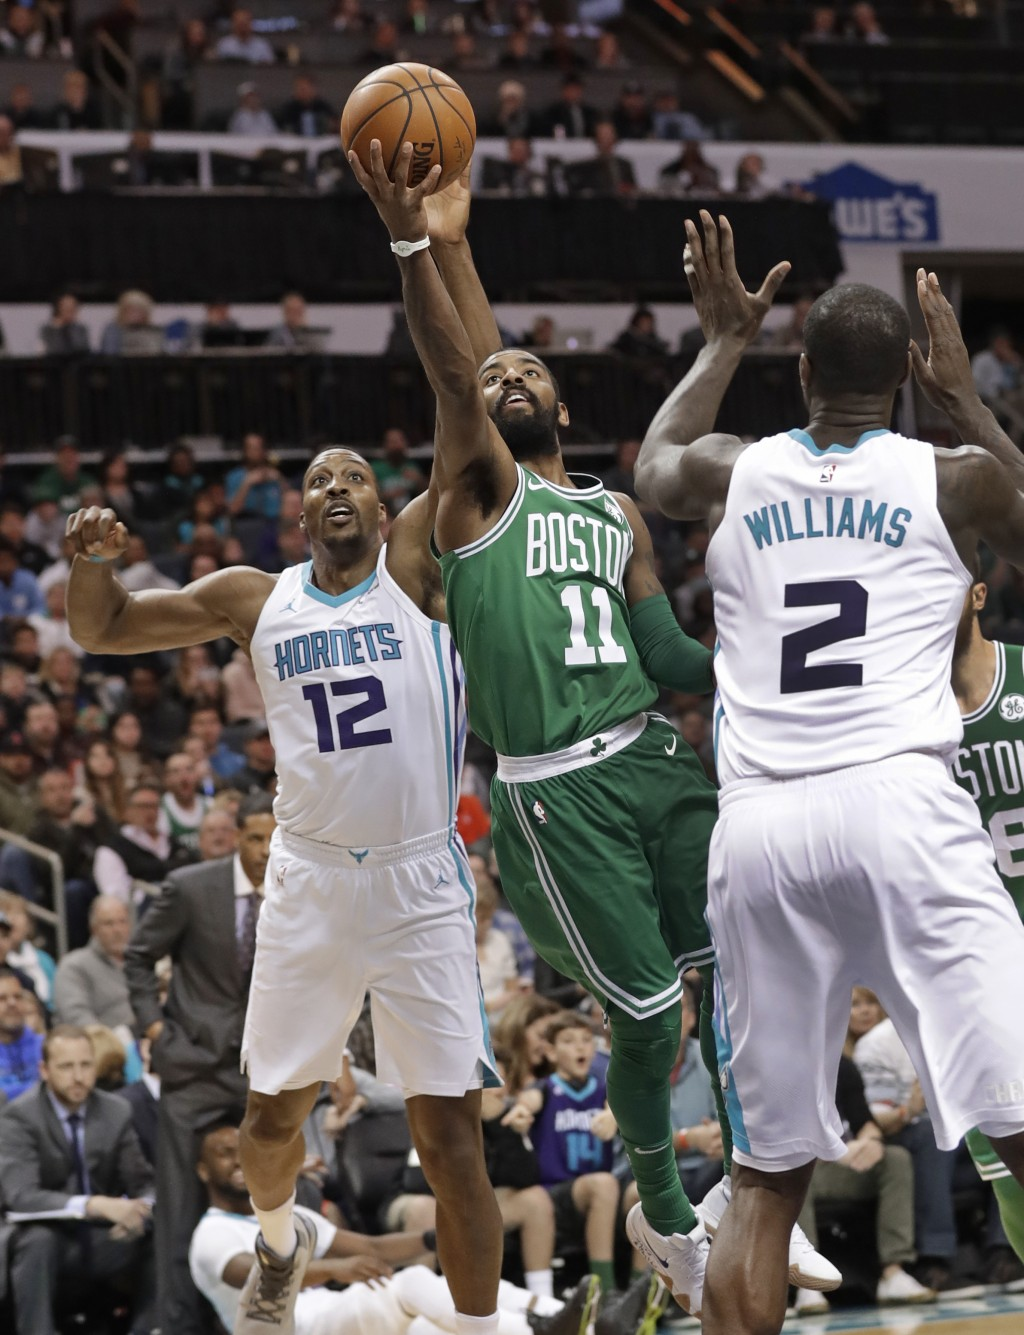 Boston Celtics' Kyrie Irving (11) drives between Charlotte Hornets' Dwight Howard (12) and Marvin Williams (2) during the first half of an NBA basketb...